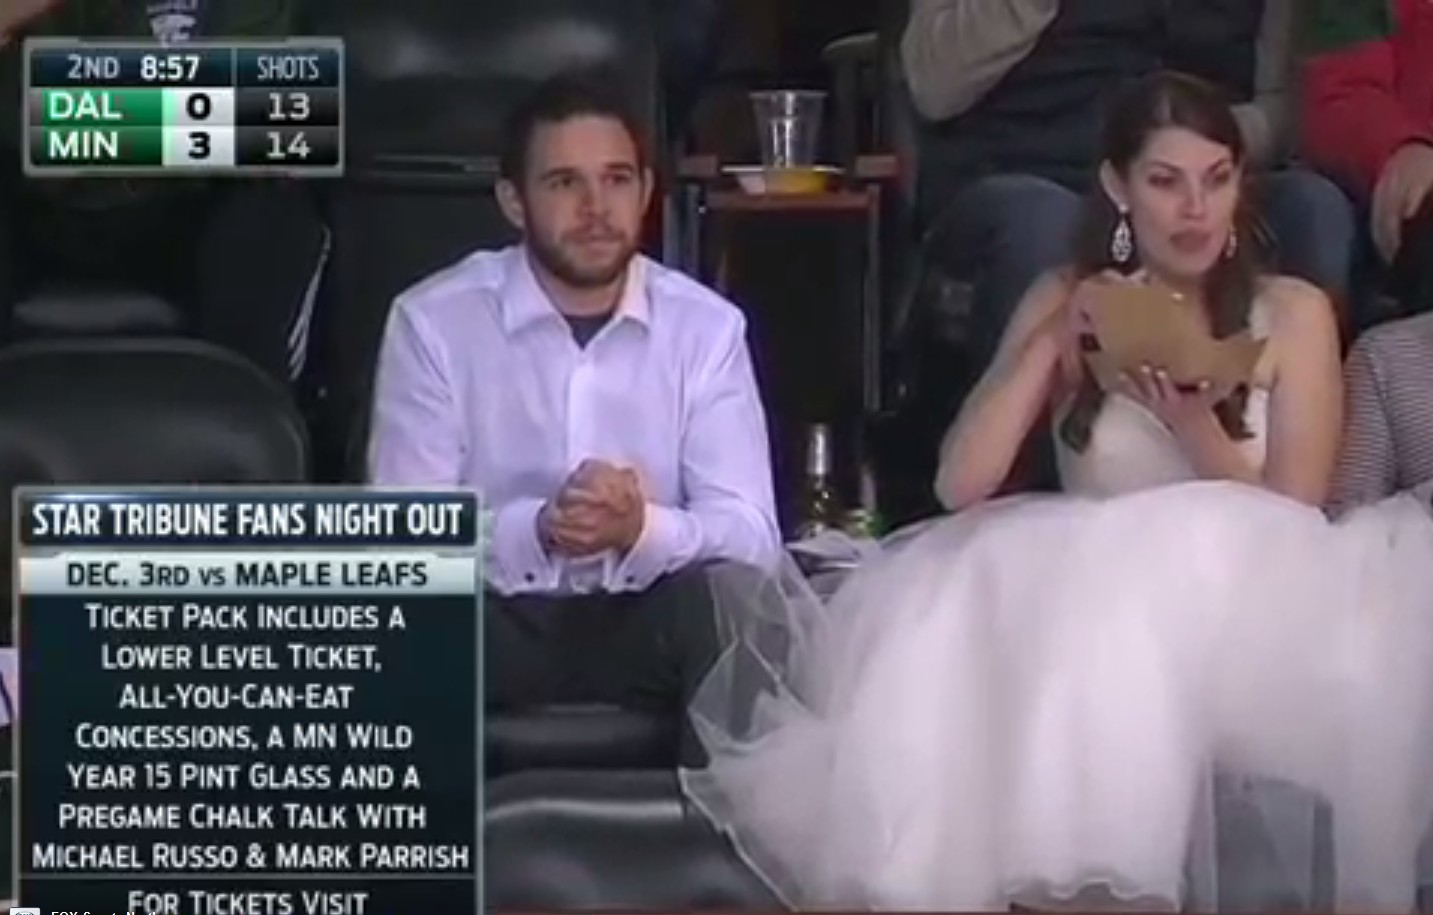 Relationship Goals: Woman wears wedding dress at hockey game